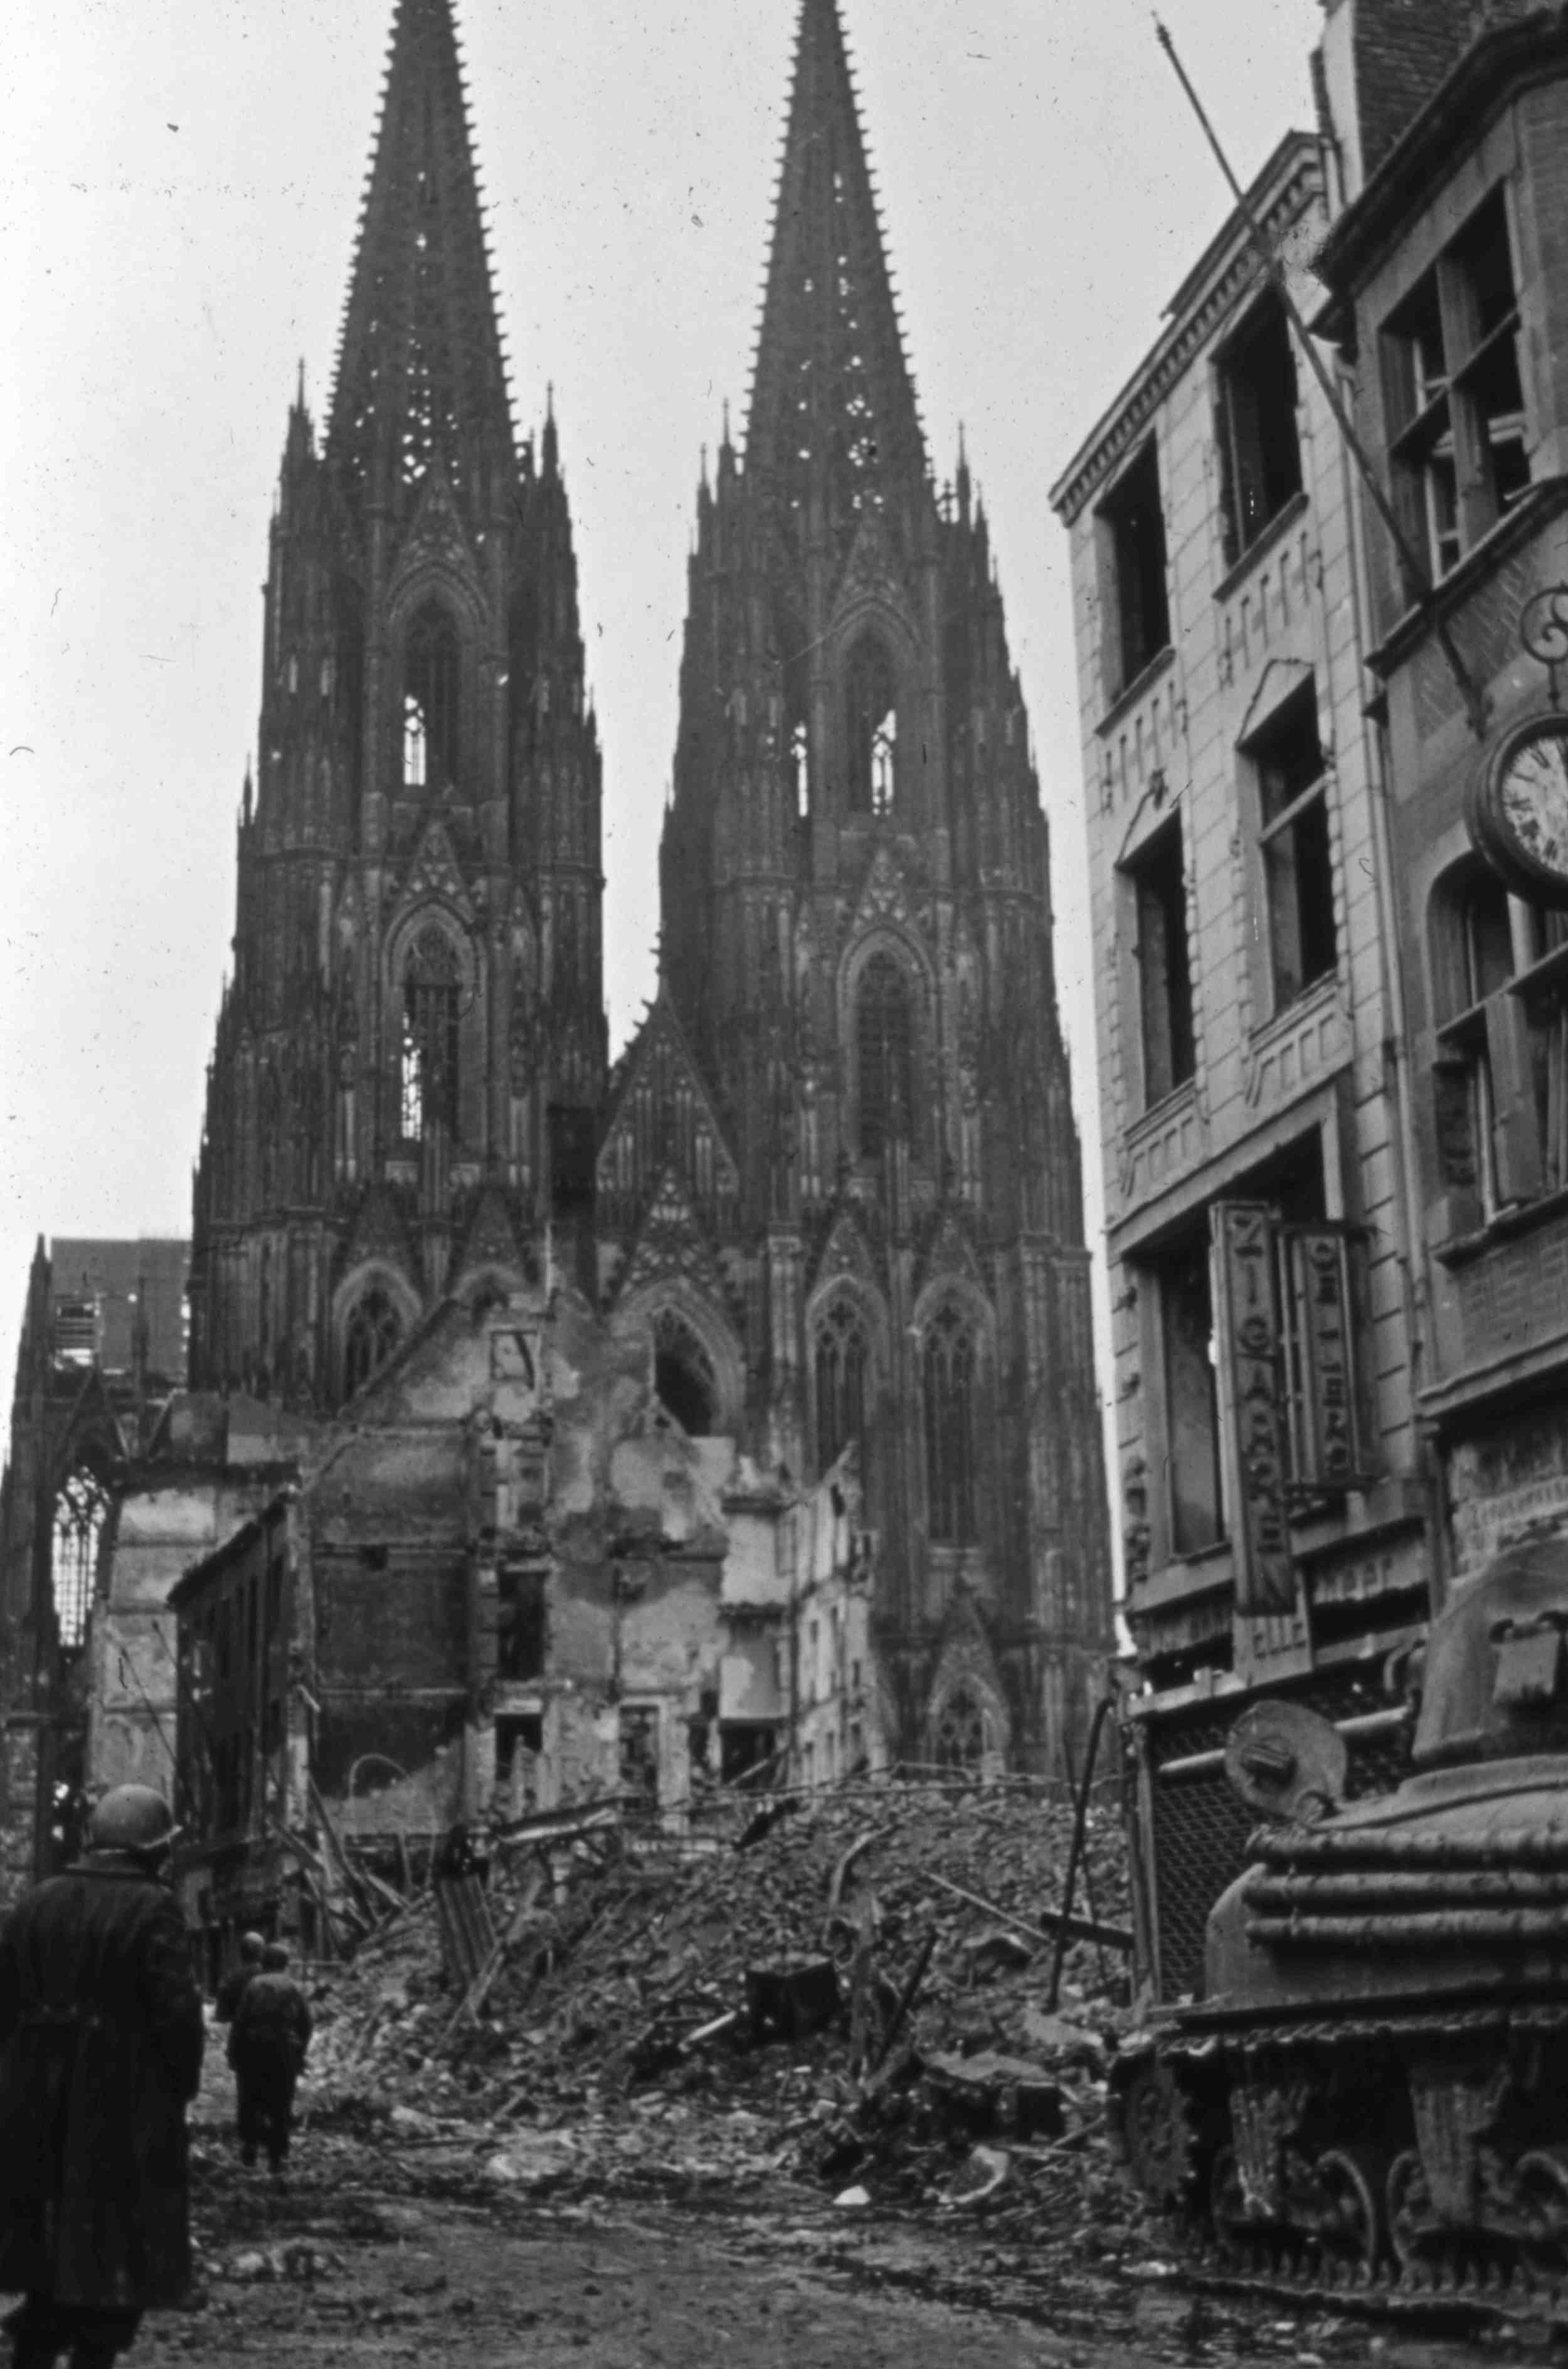 March 1945. The heavily damaged Dom Cathedral in Cologne, Germany.